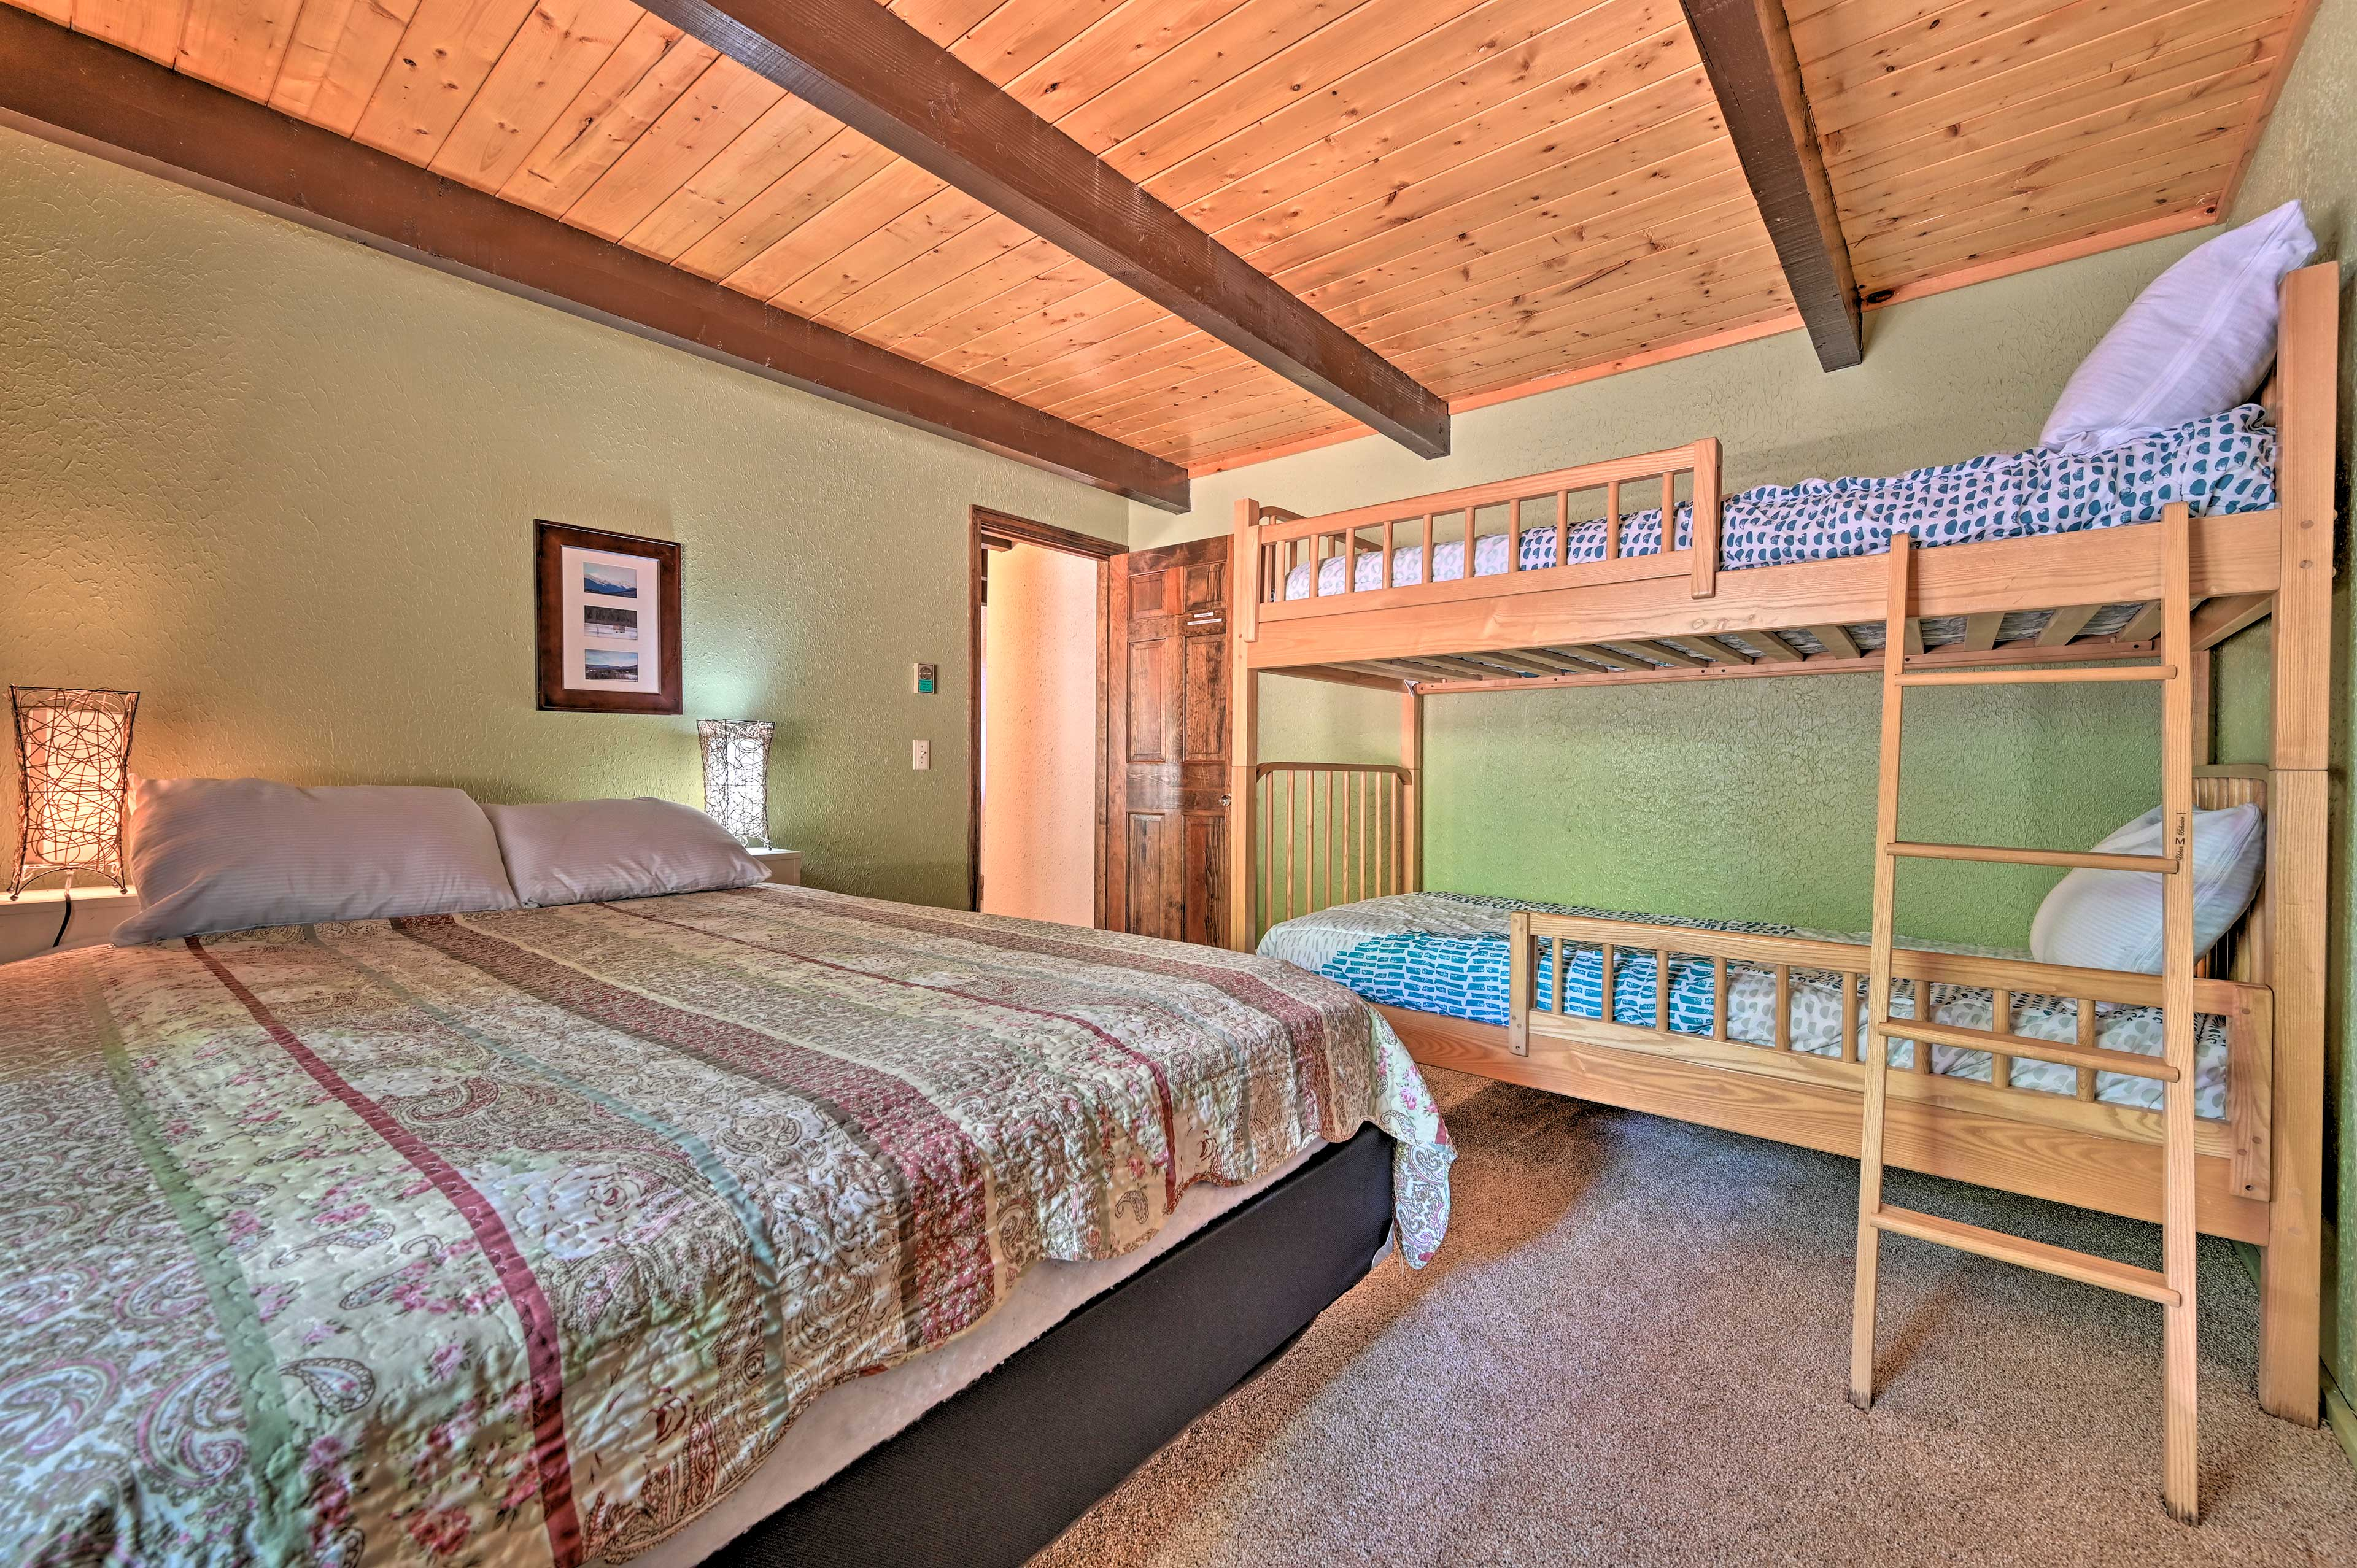 An additional twin bunk bed provides extra sleeping space for 2.